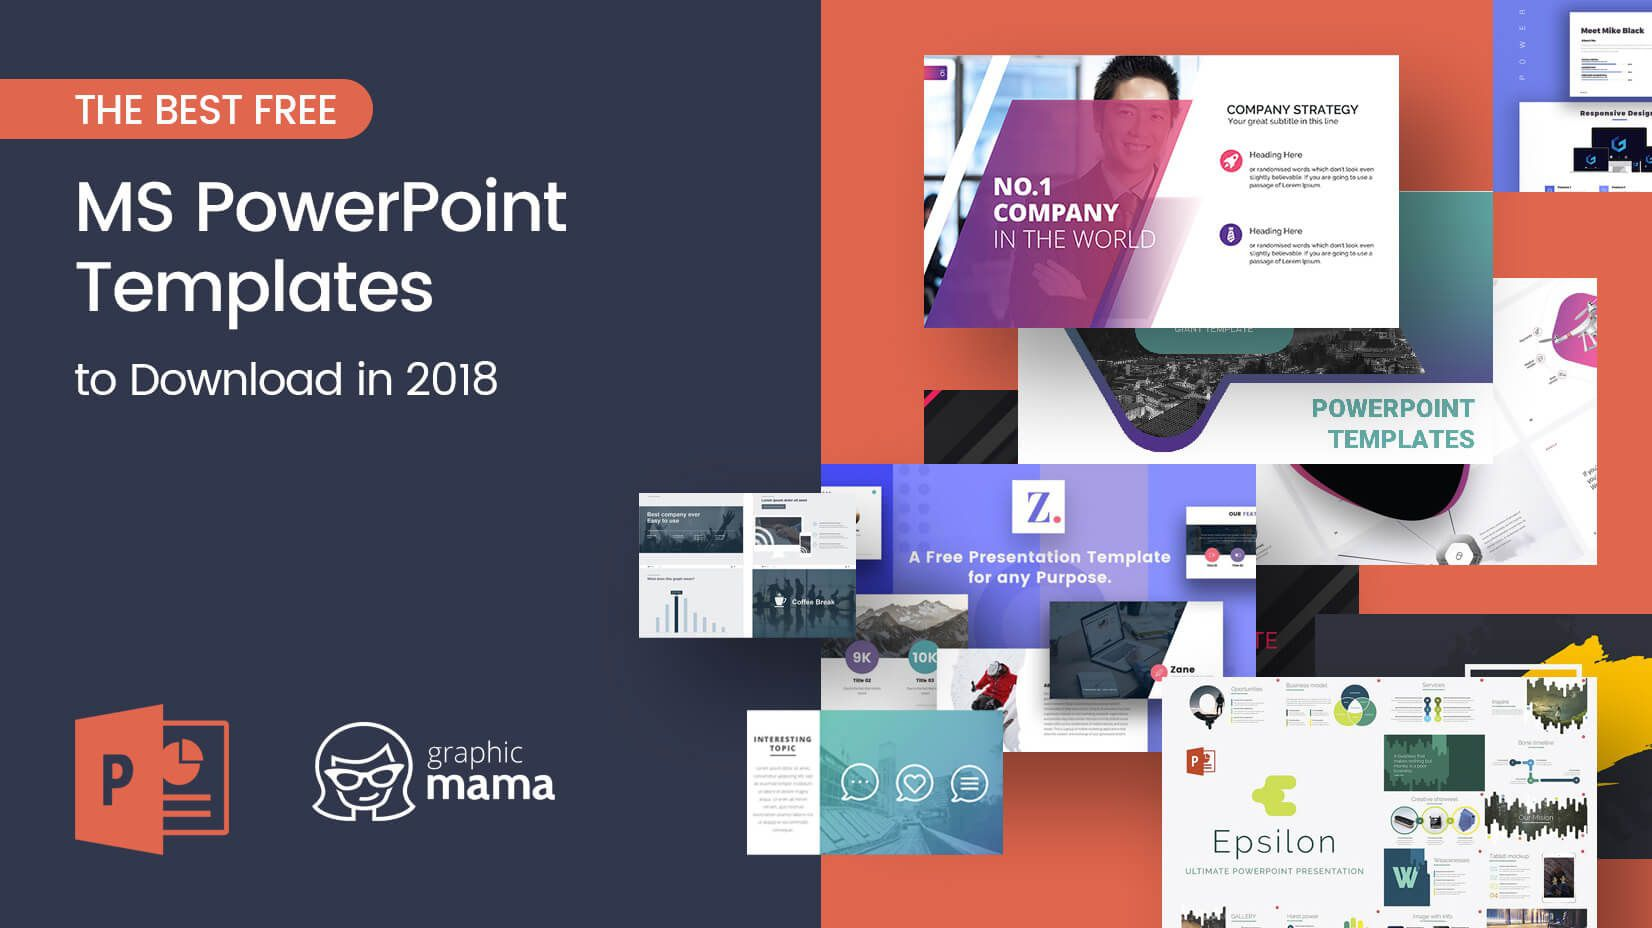 008 Fascinating Product Presentation Ppt Template Free Download High Def Full